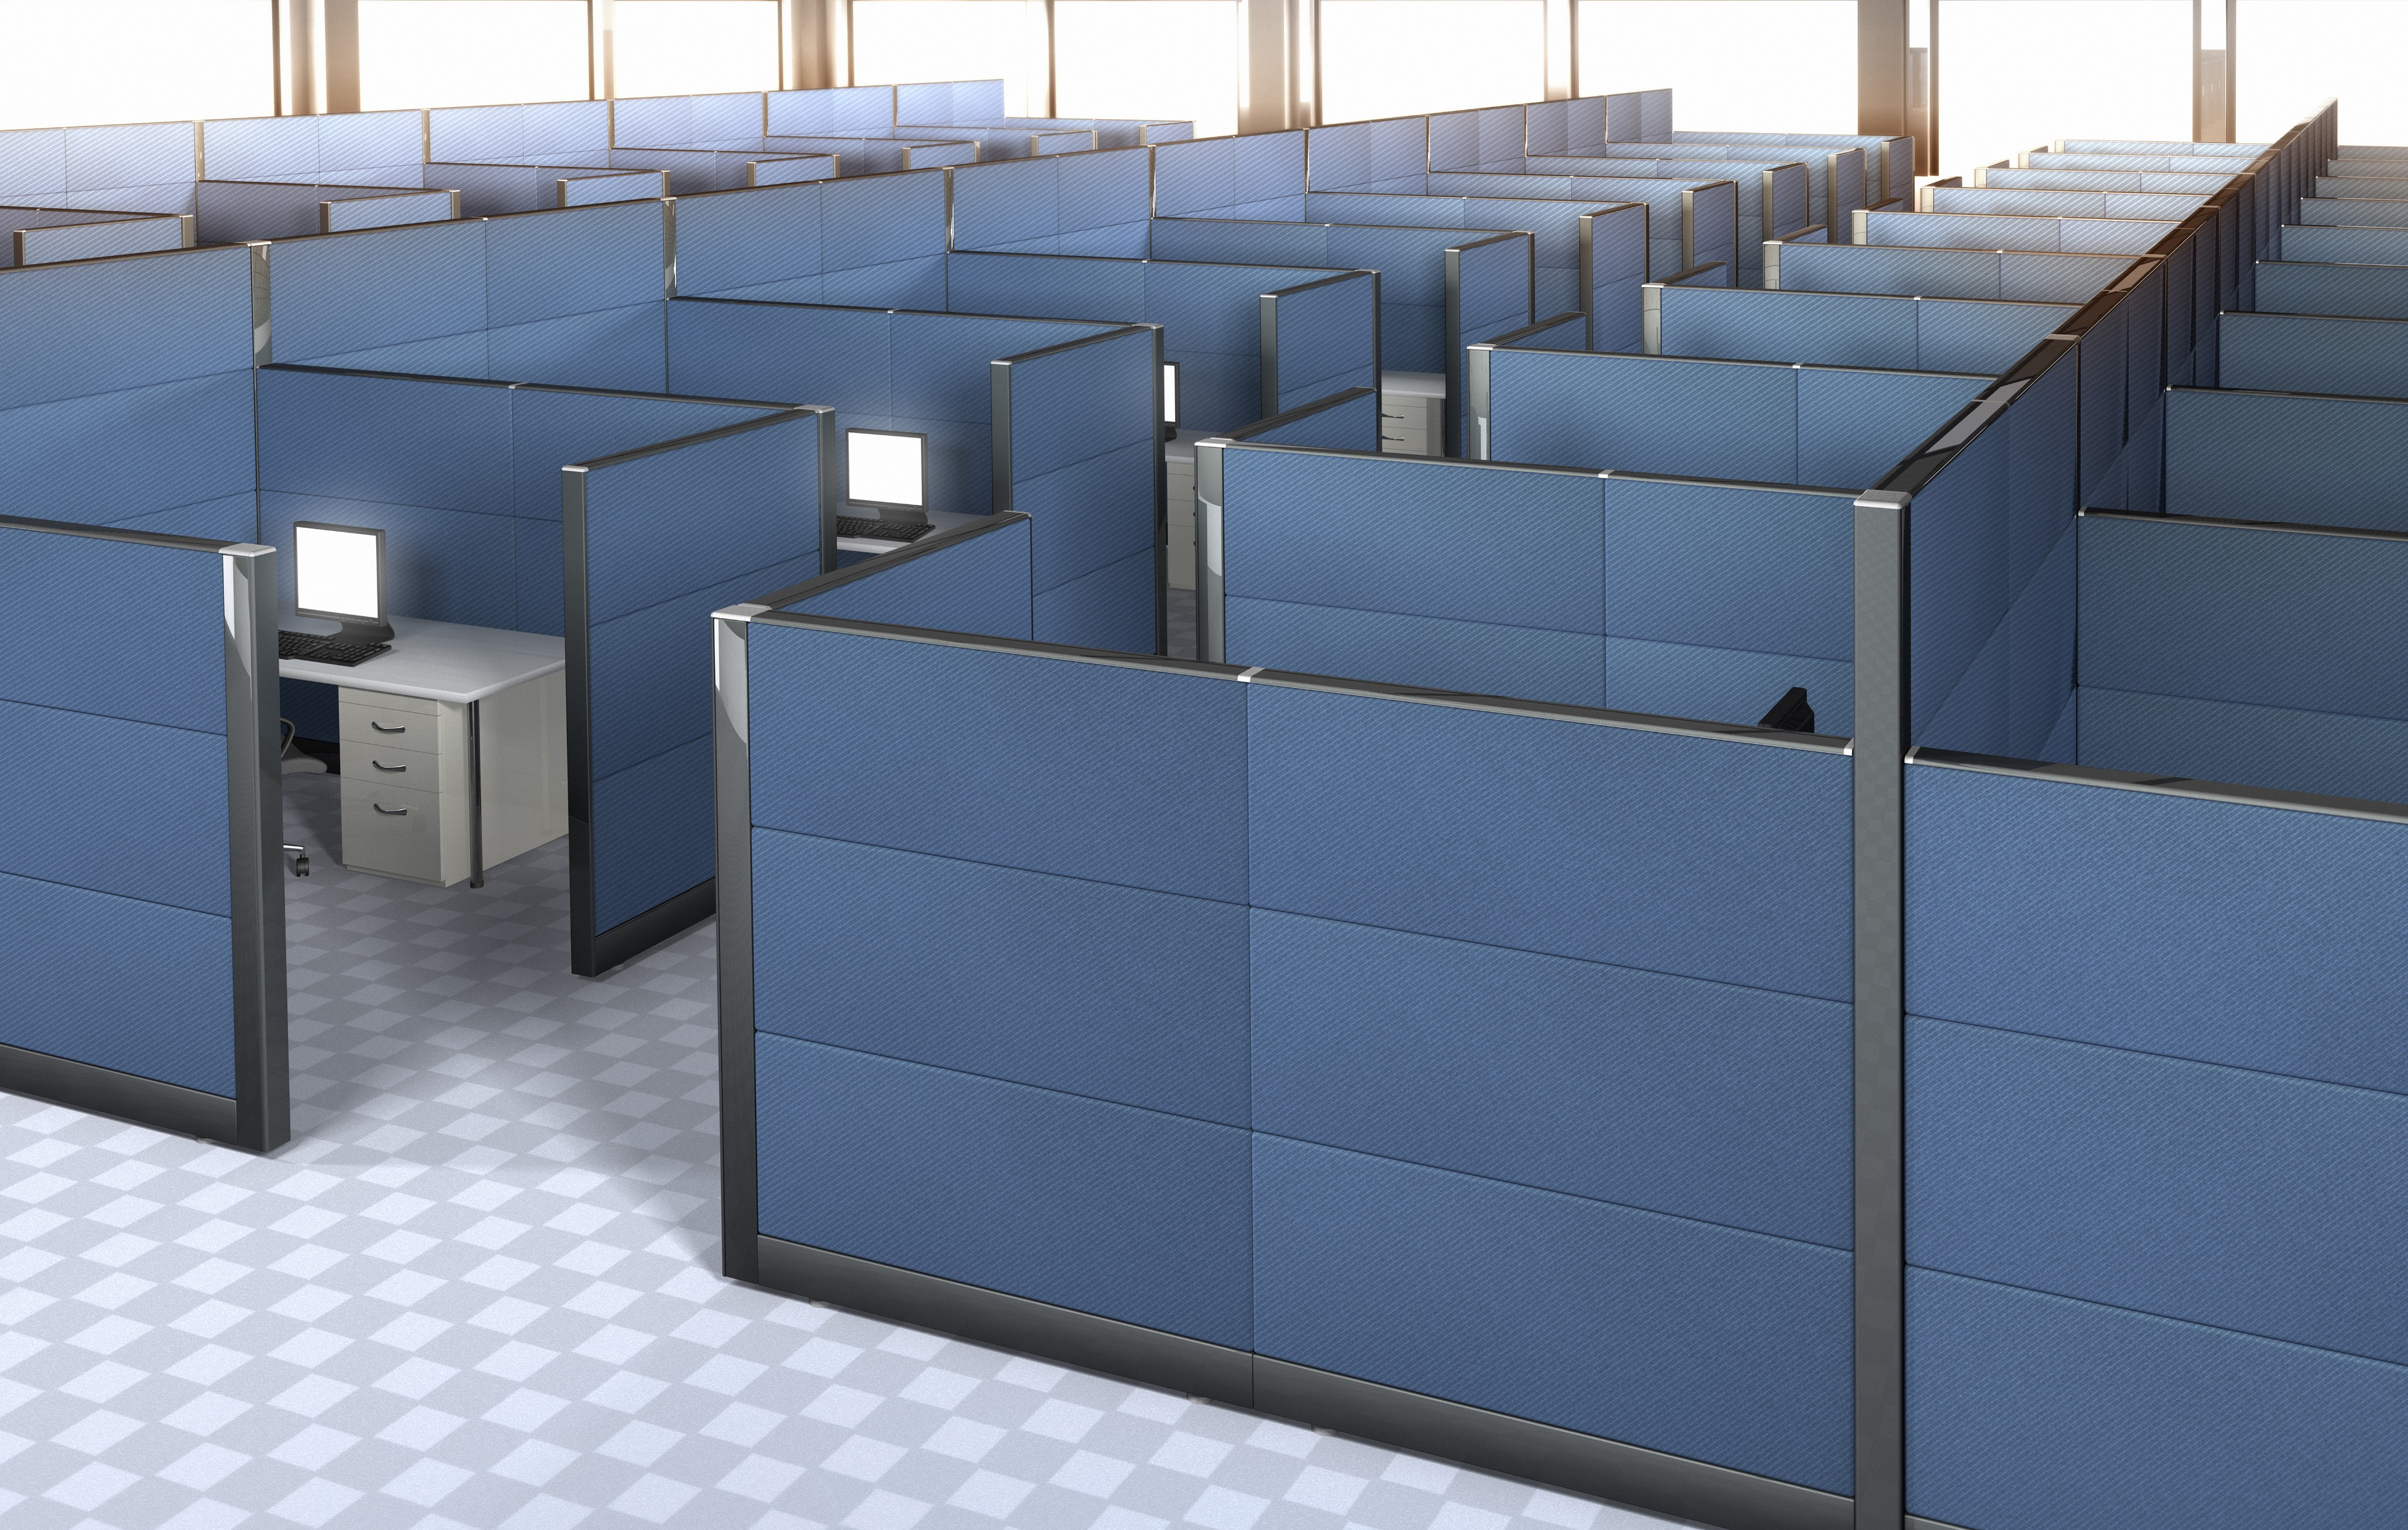 36 identical cubes (4x9) with desk, monitor, file cabinet and steel-blue separators